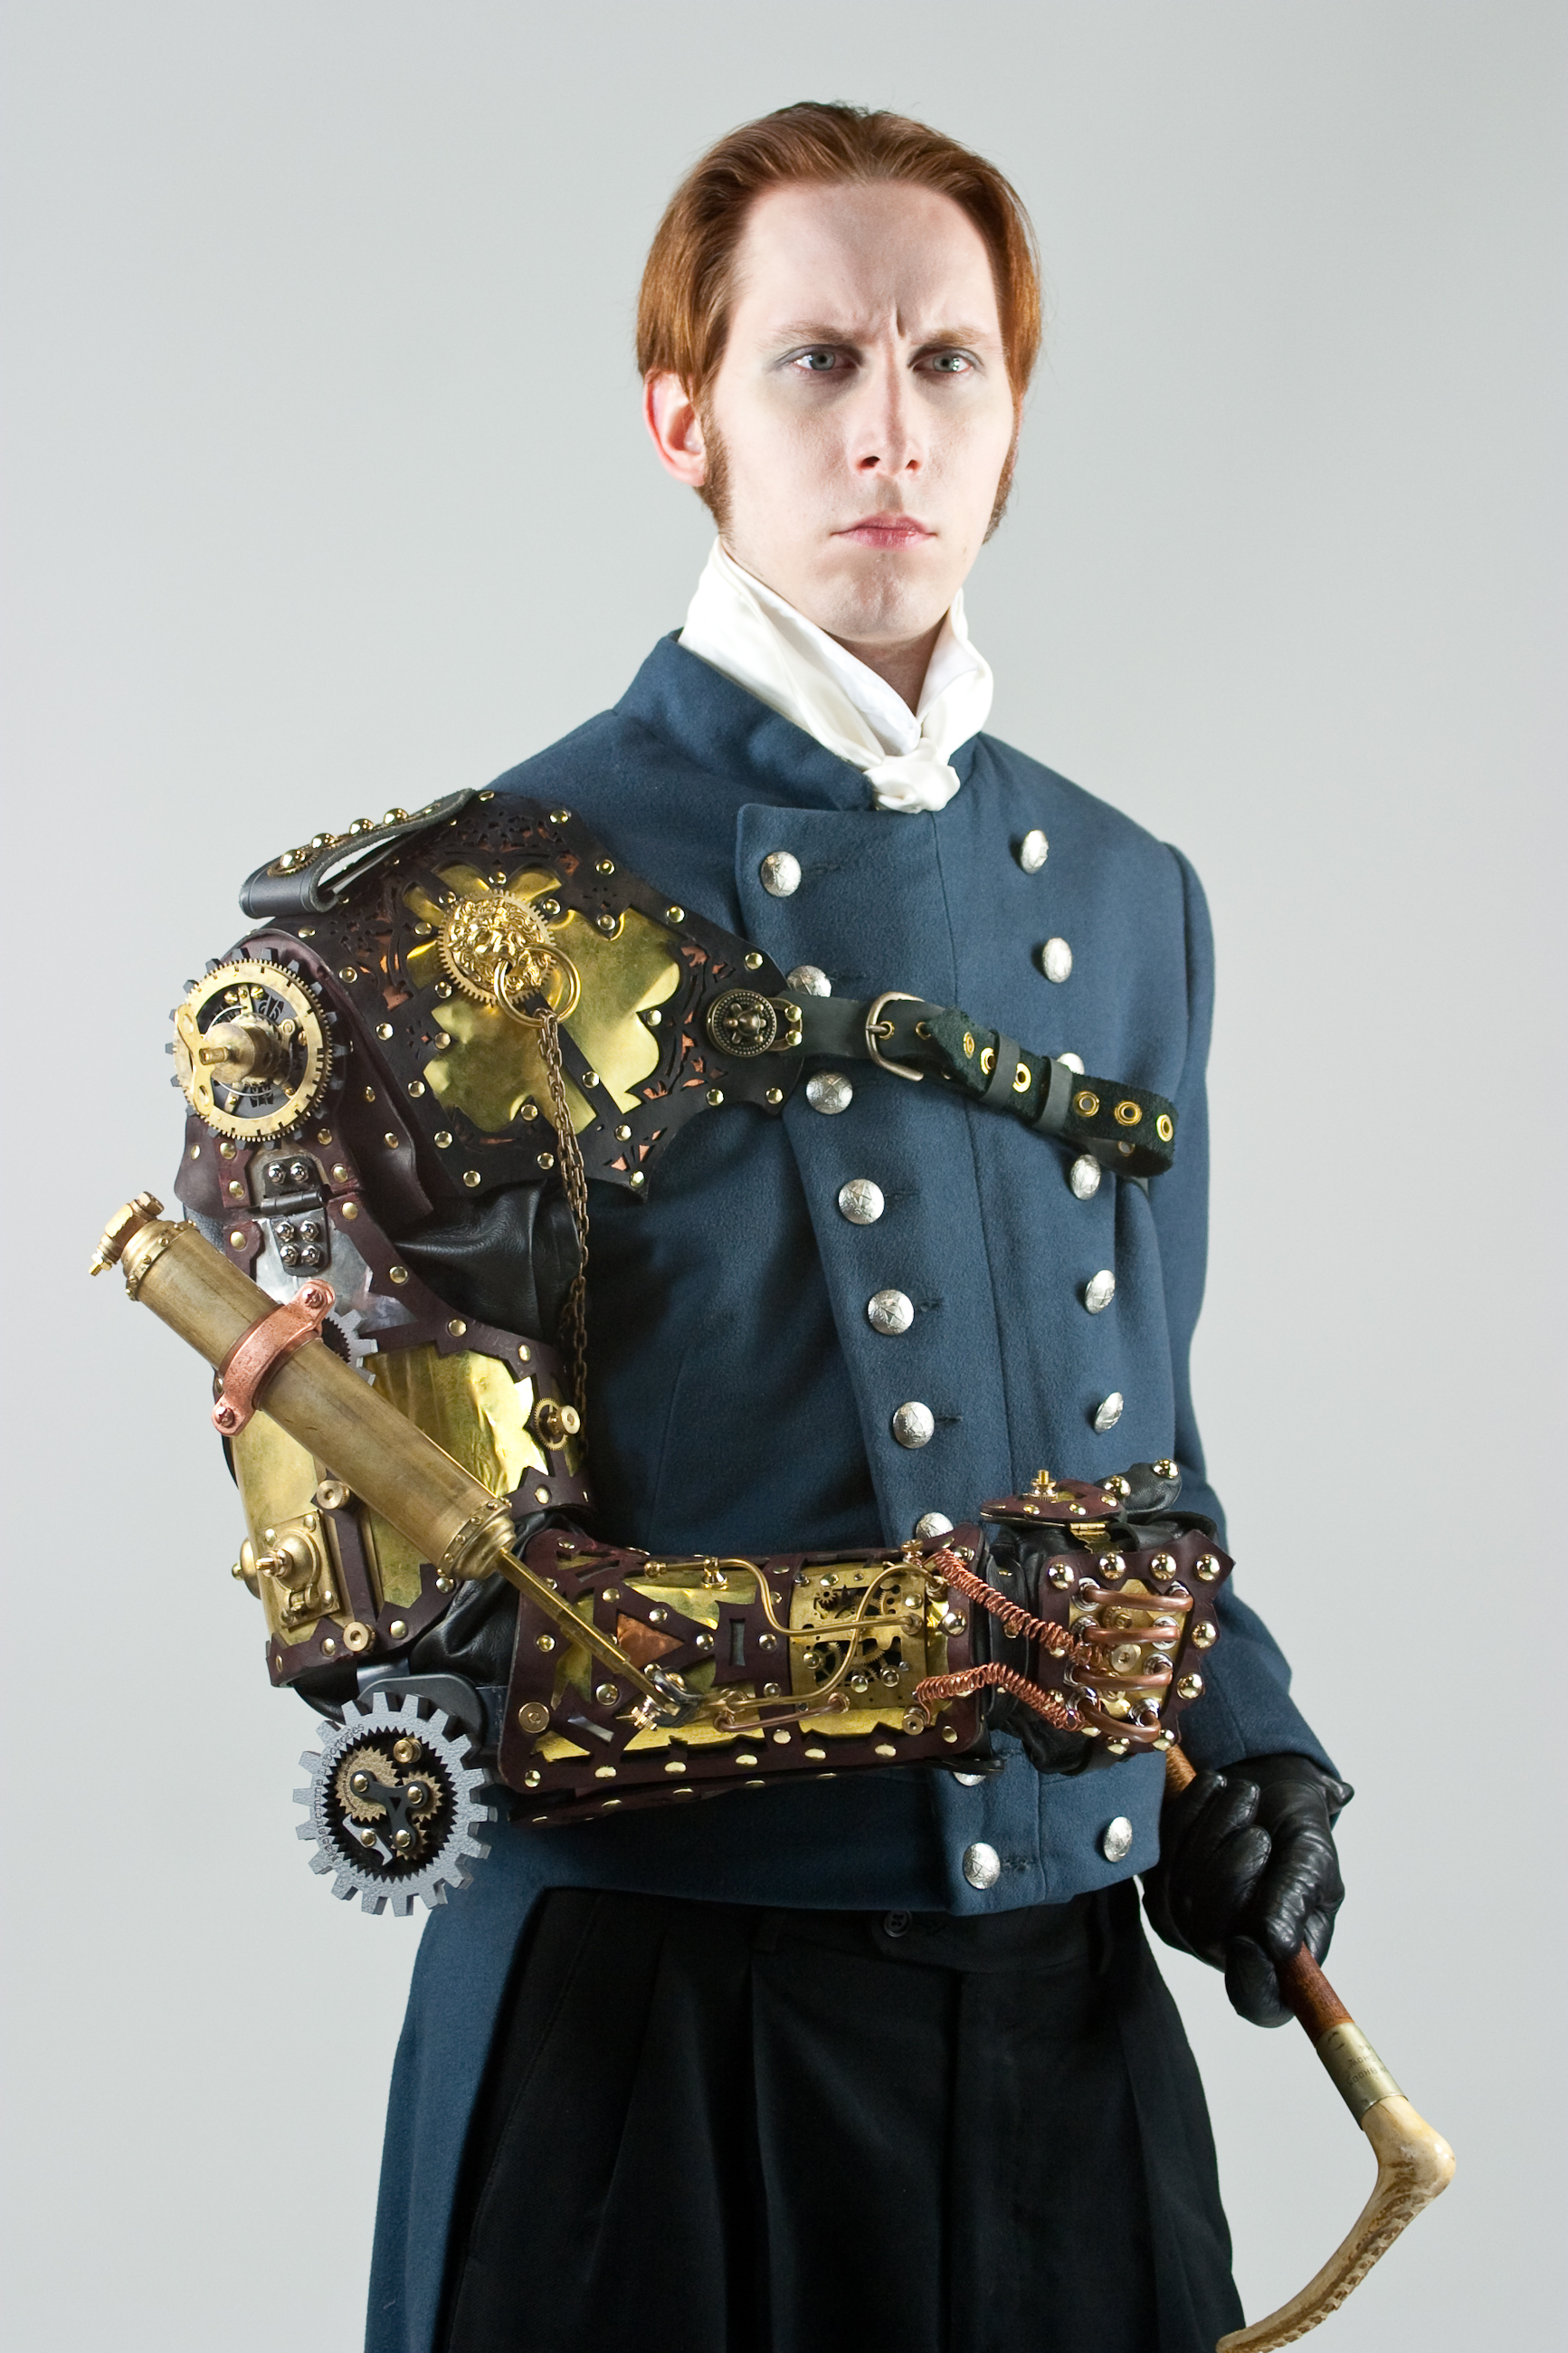 cosplay steampunk HD Wallpaper